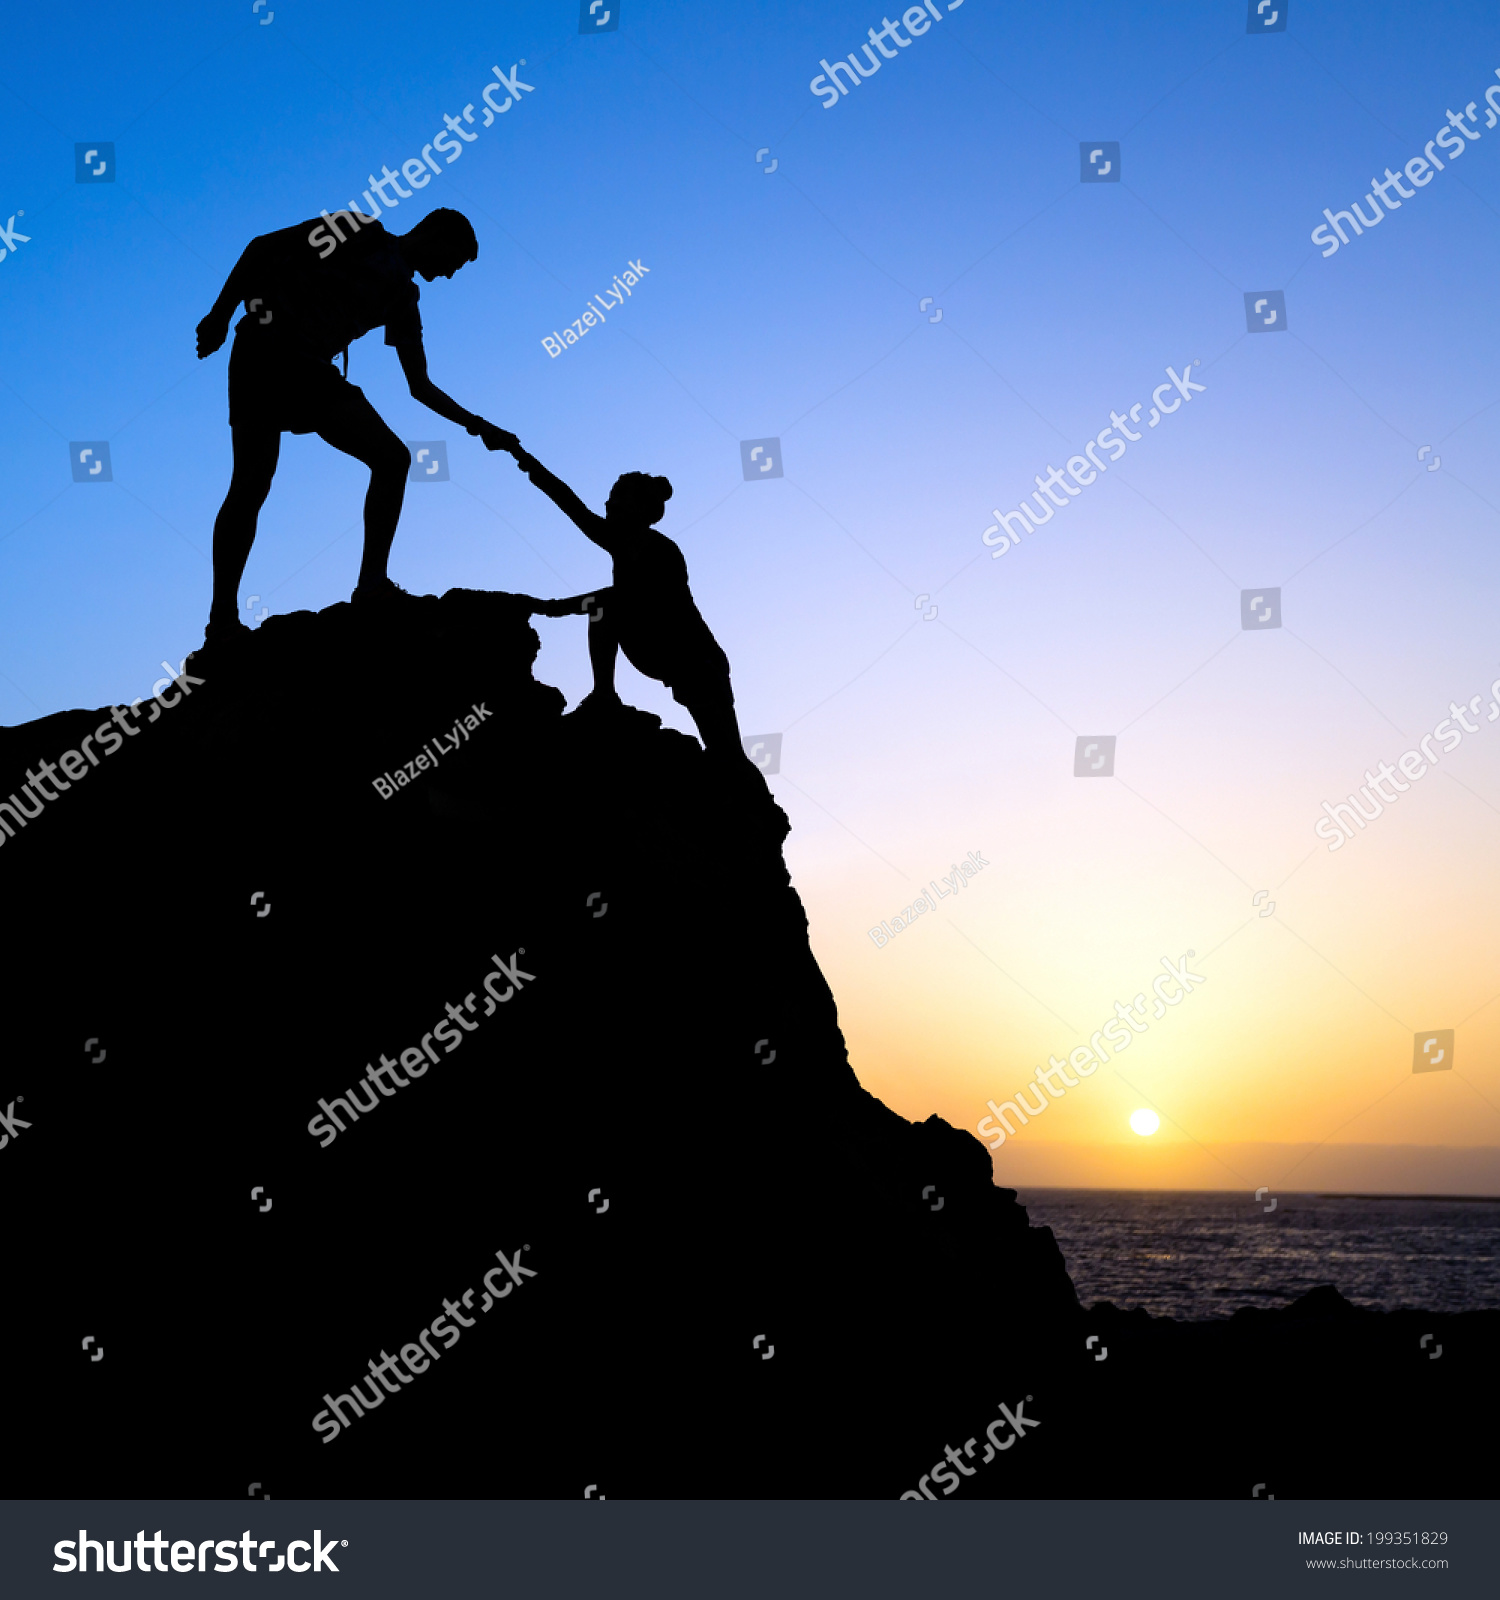 Helping Each Other: Couple Hiking Help Each Other Hand Stock Photo 199351829